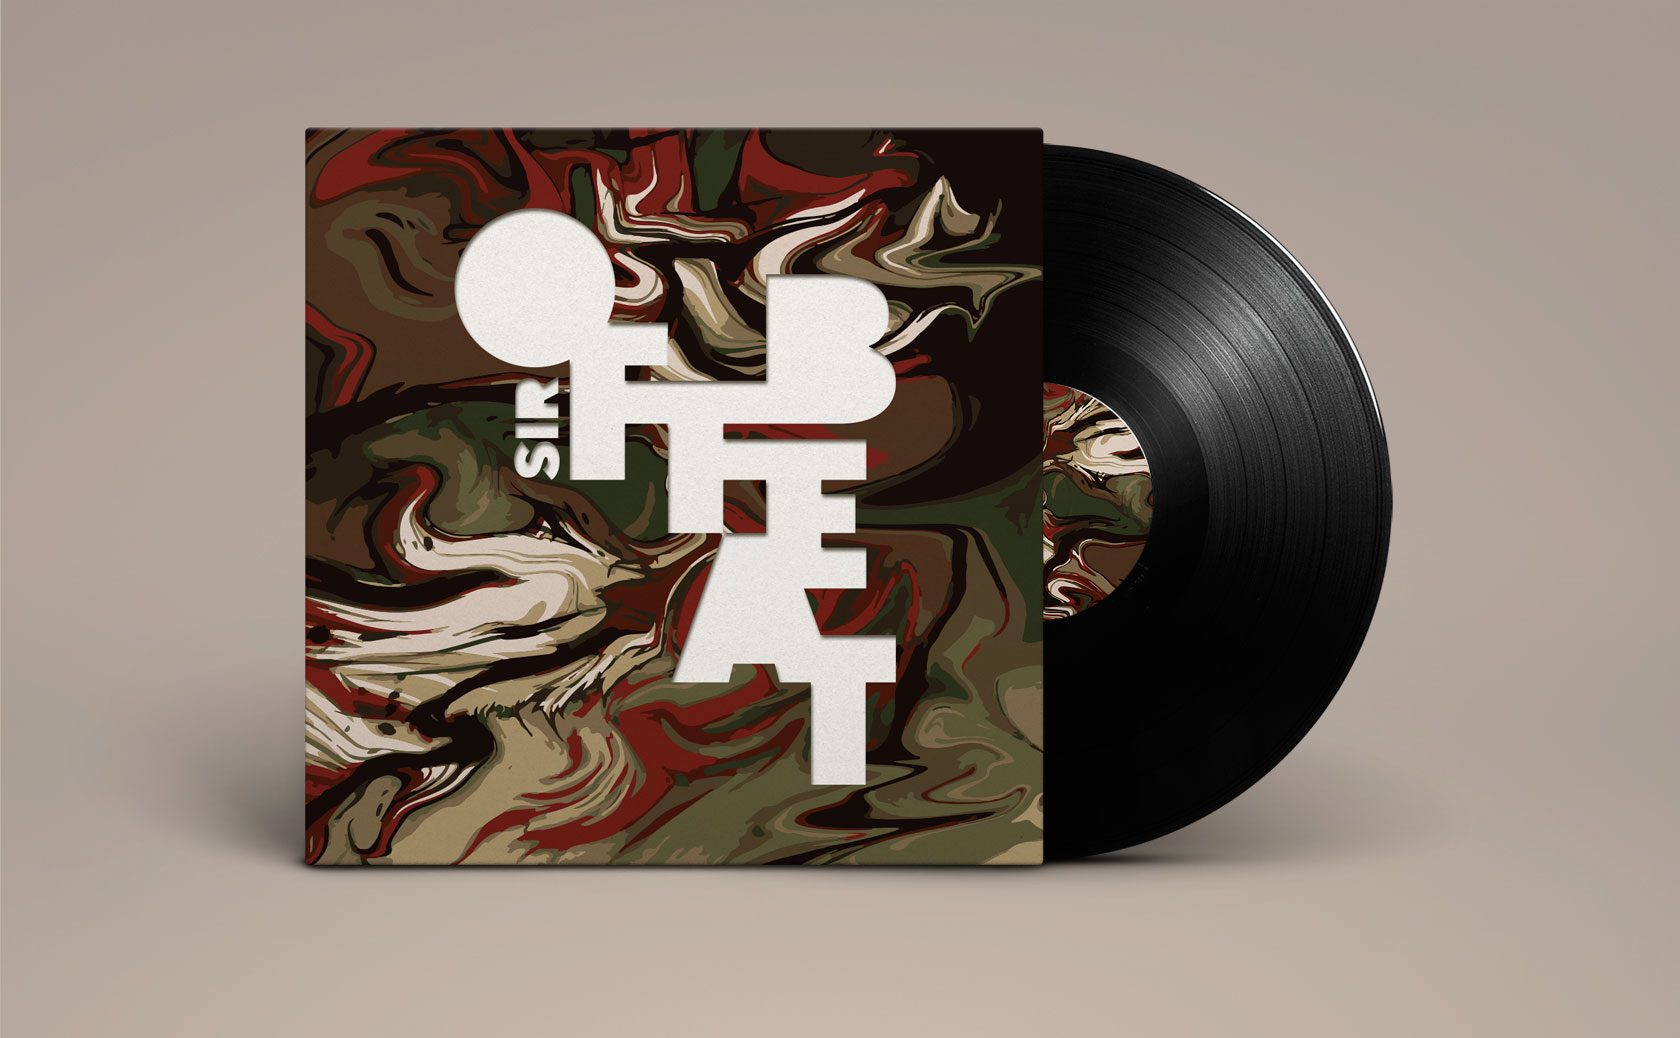 Sir Offbeat Record Cover Design by Furia